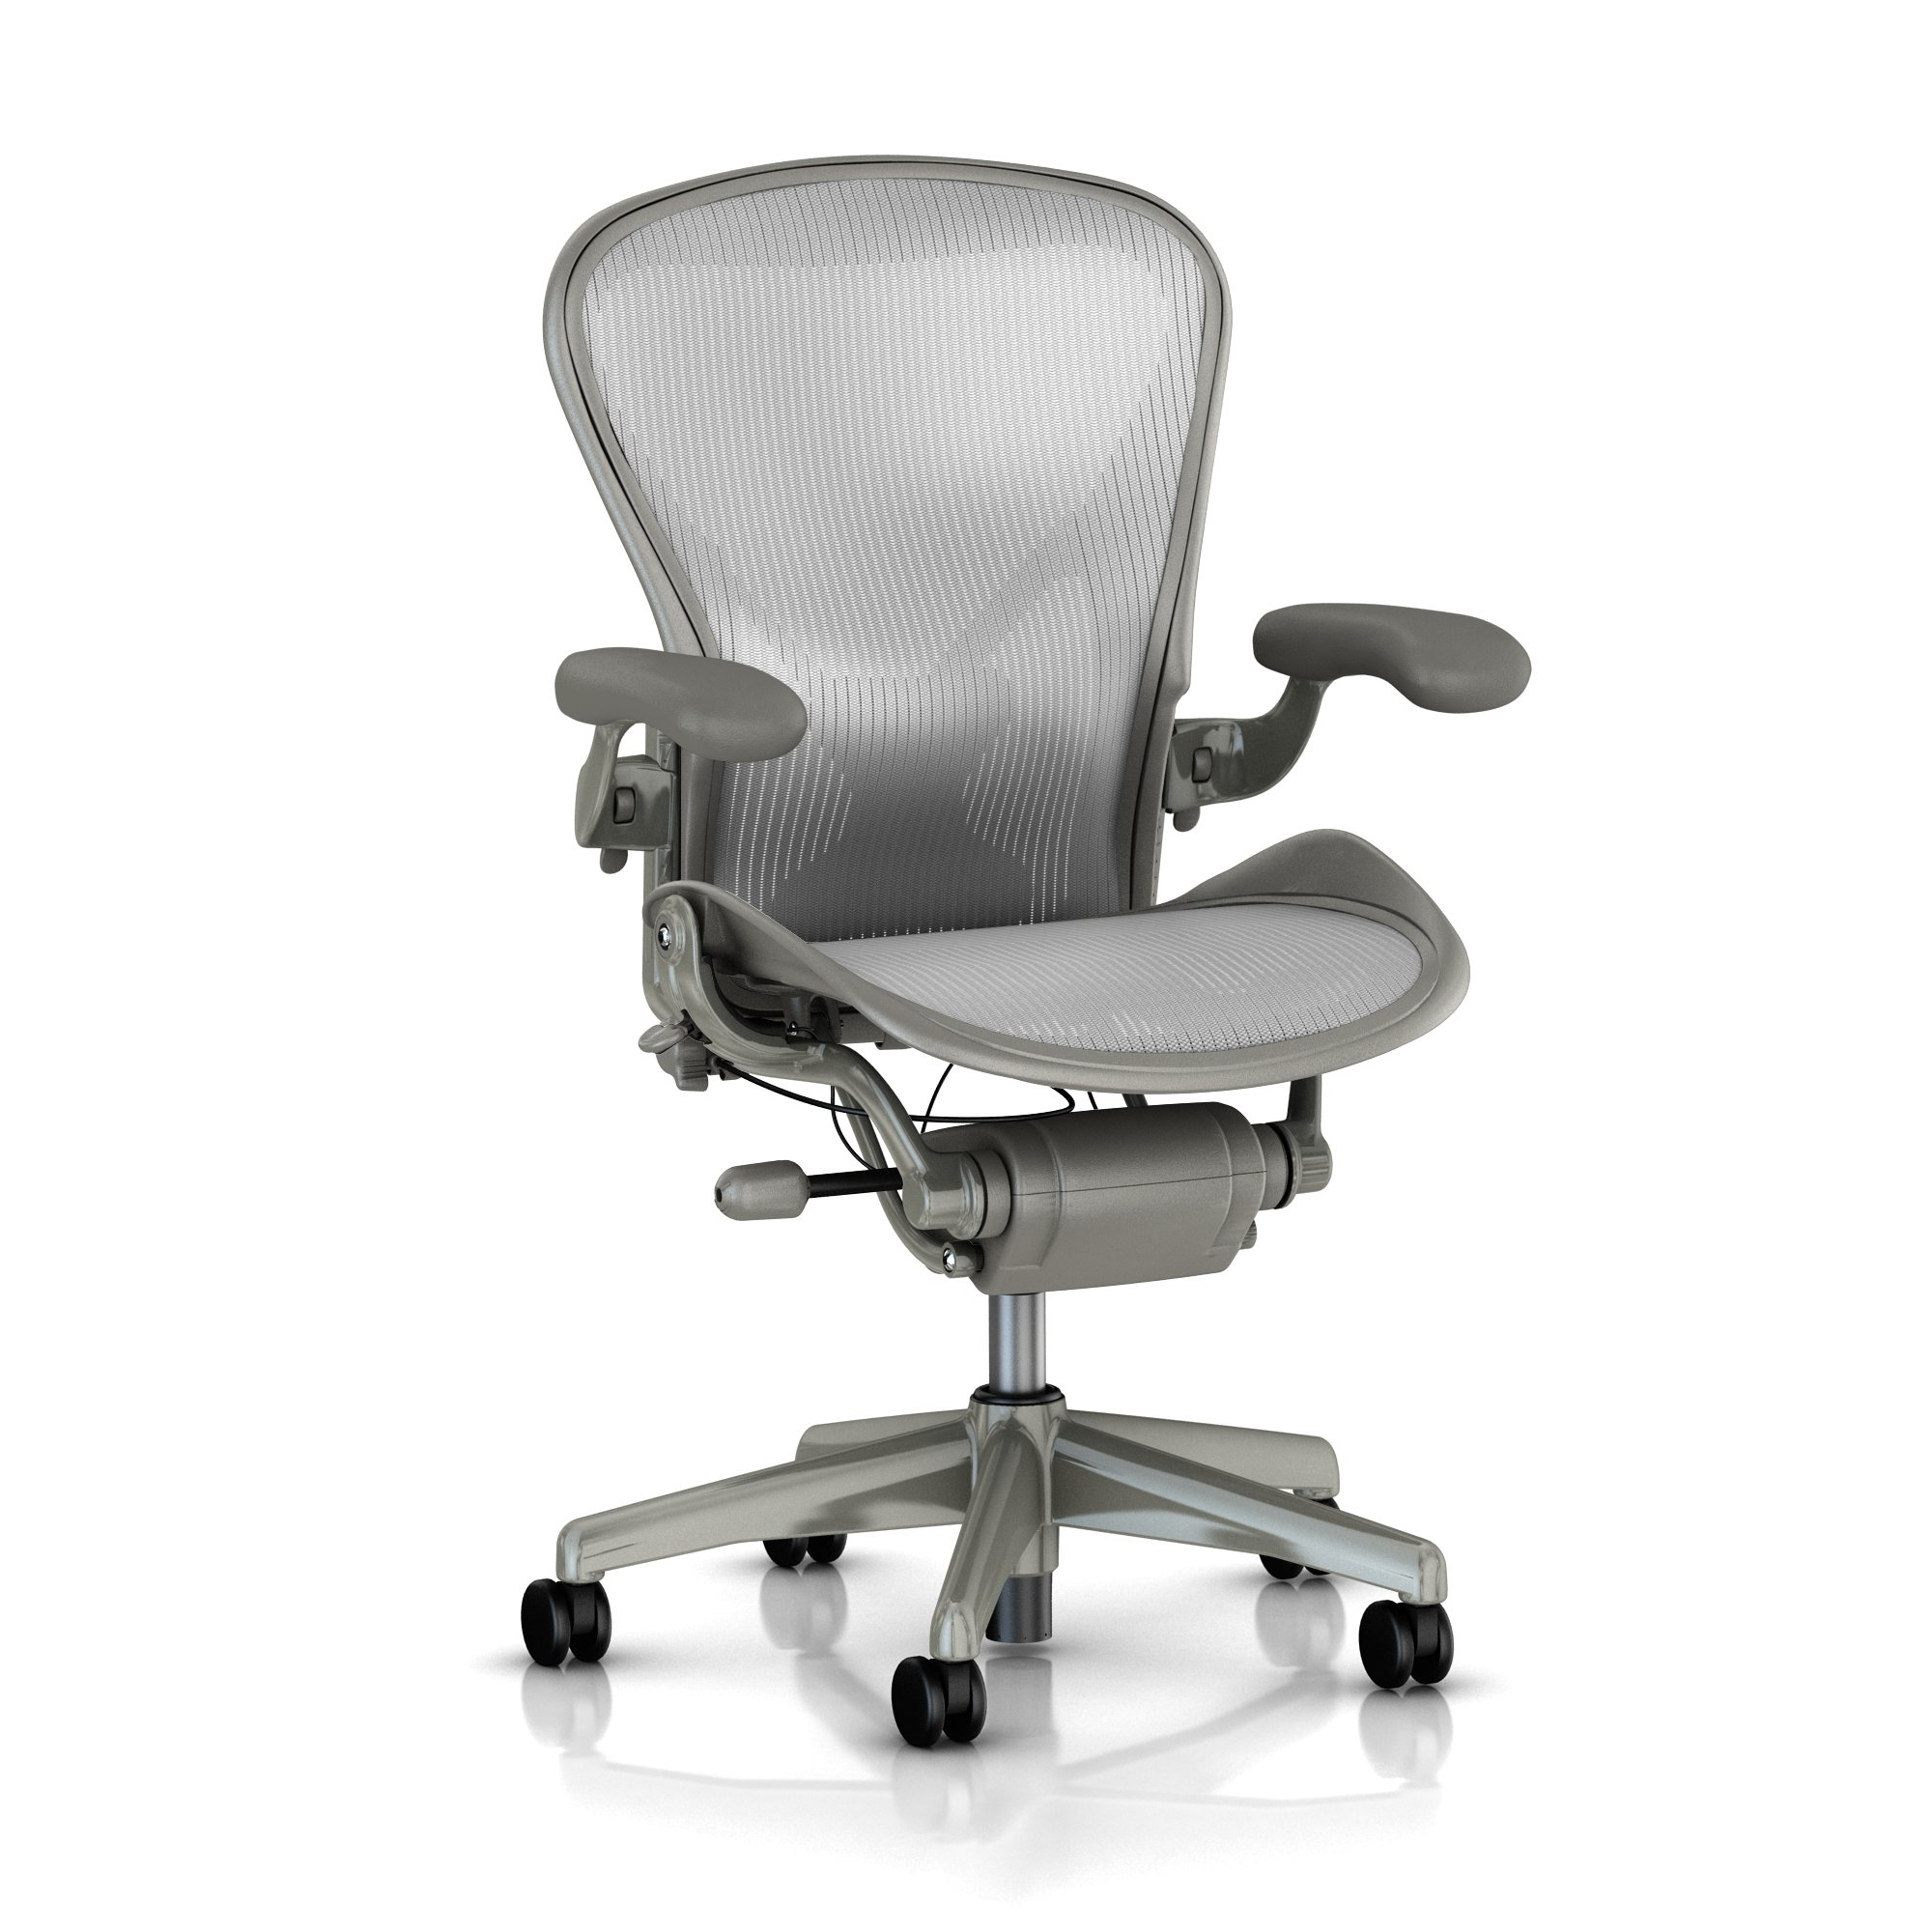 A Size - Adjustable Lumbar Support Back support - Titanium with smoke Finish - Zinc Color